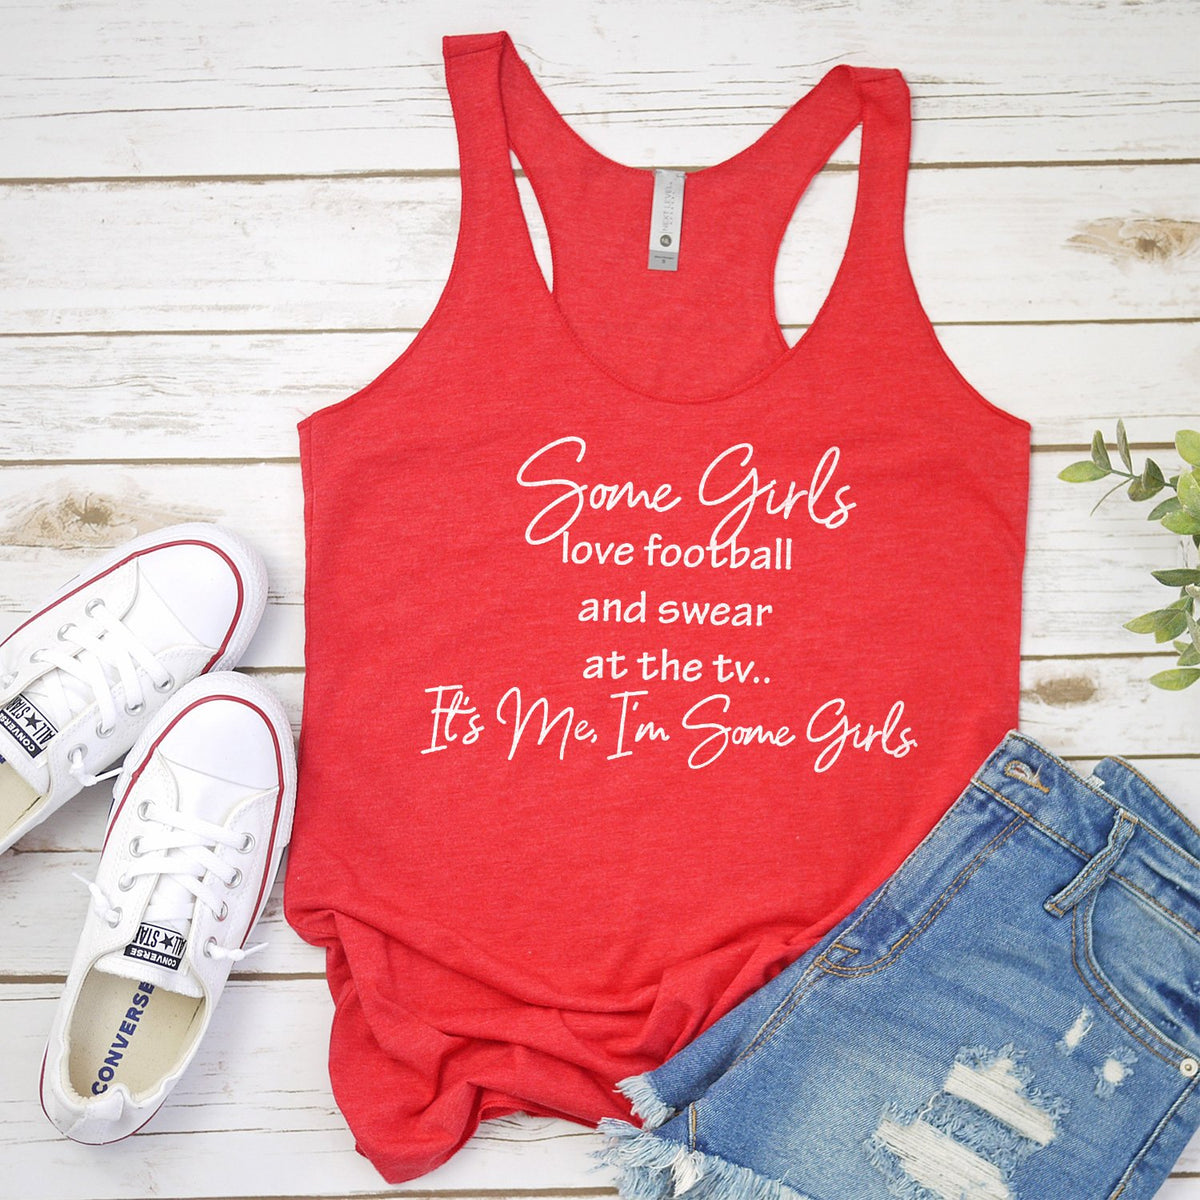 Some Girls Love Football and Swear at the TV - Tank Top Racerback